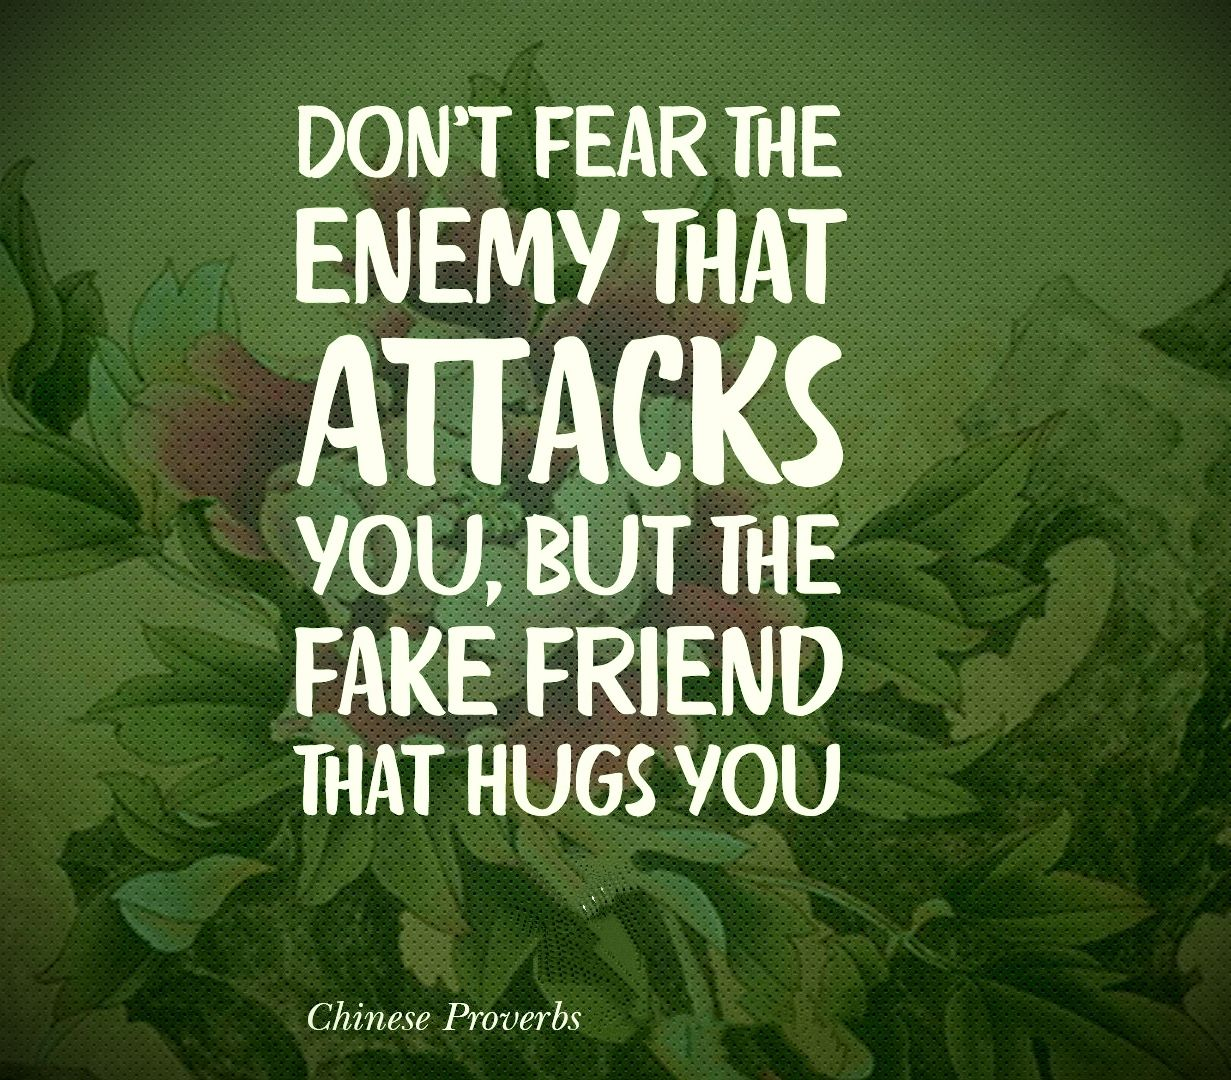 Don T Fear The Enemy That Attacks You But The Fake Friend That Hugs You Chinese Proverb Fake Friends Proverbs Chinese Proverbs